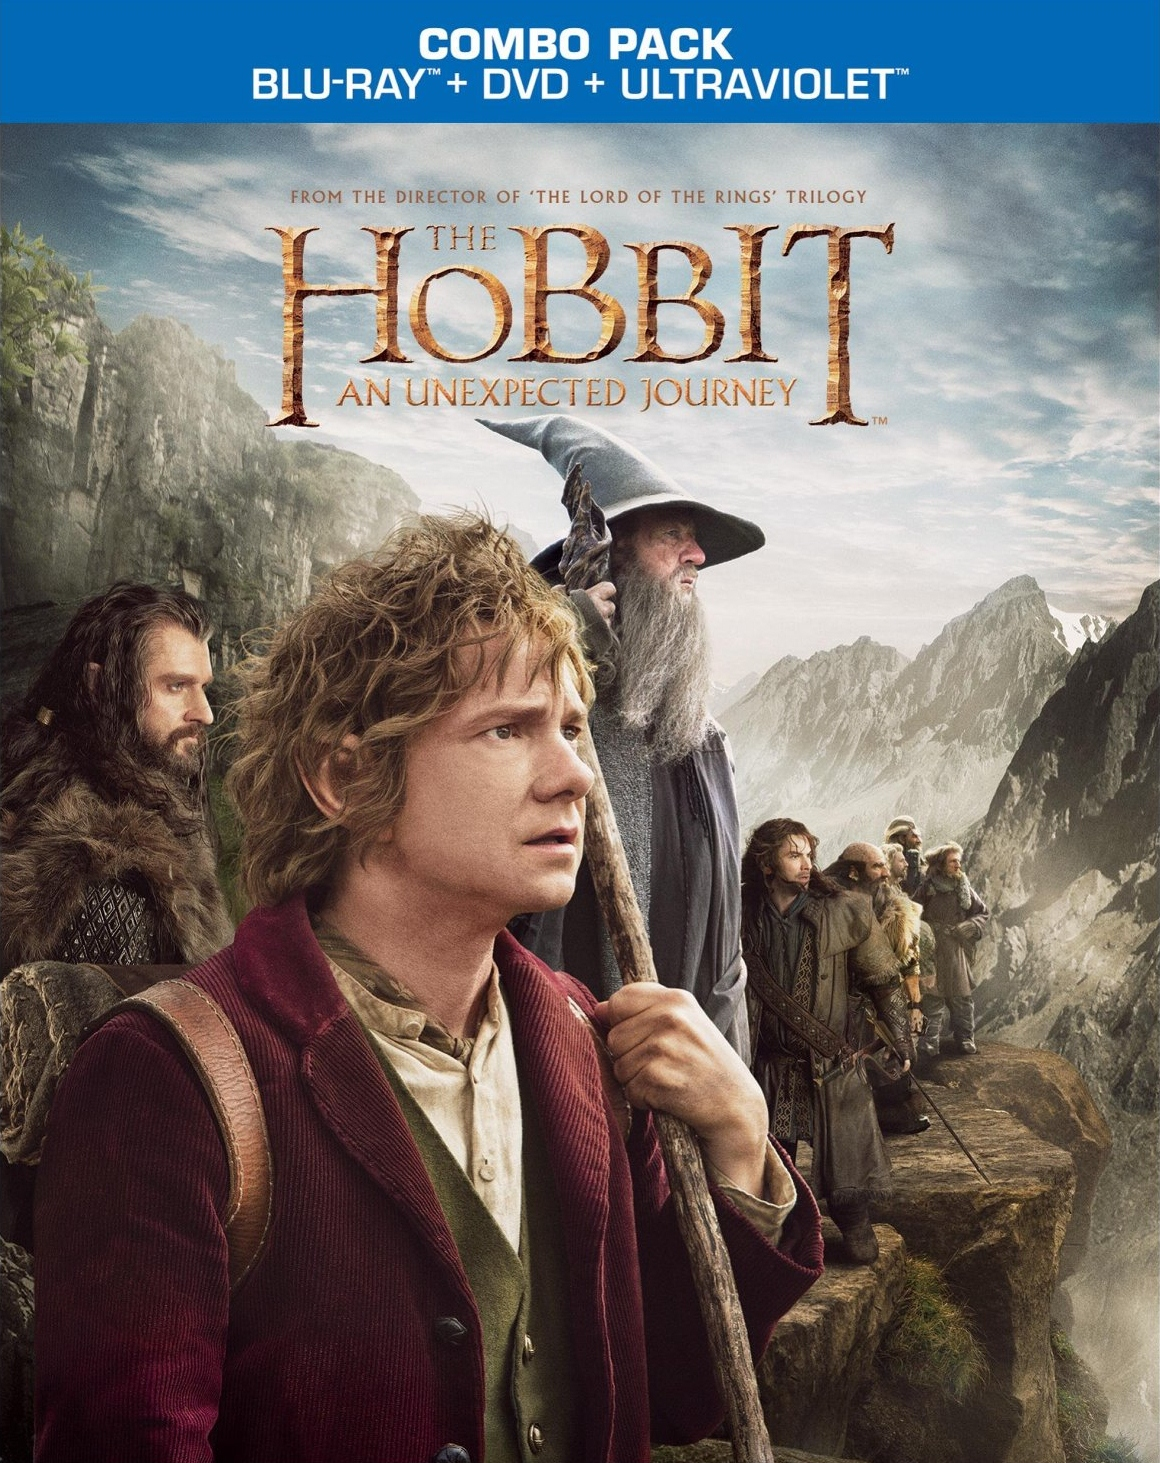 The Hobbit Blu-Ray Combo Pack